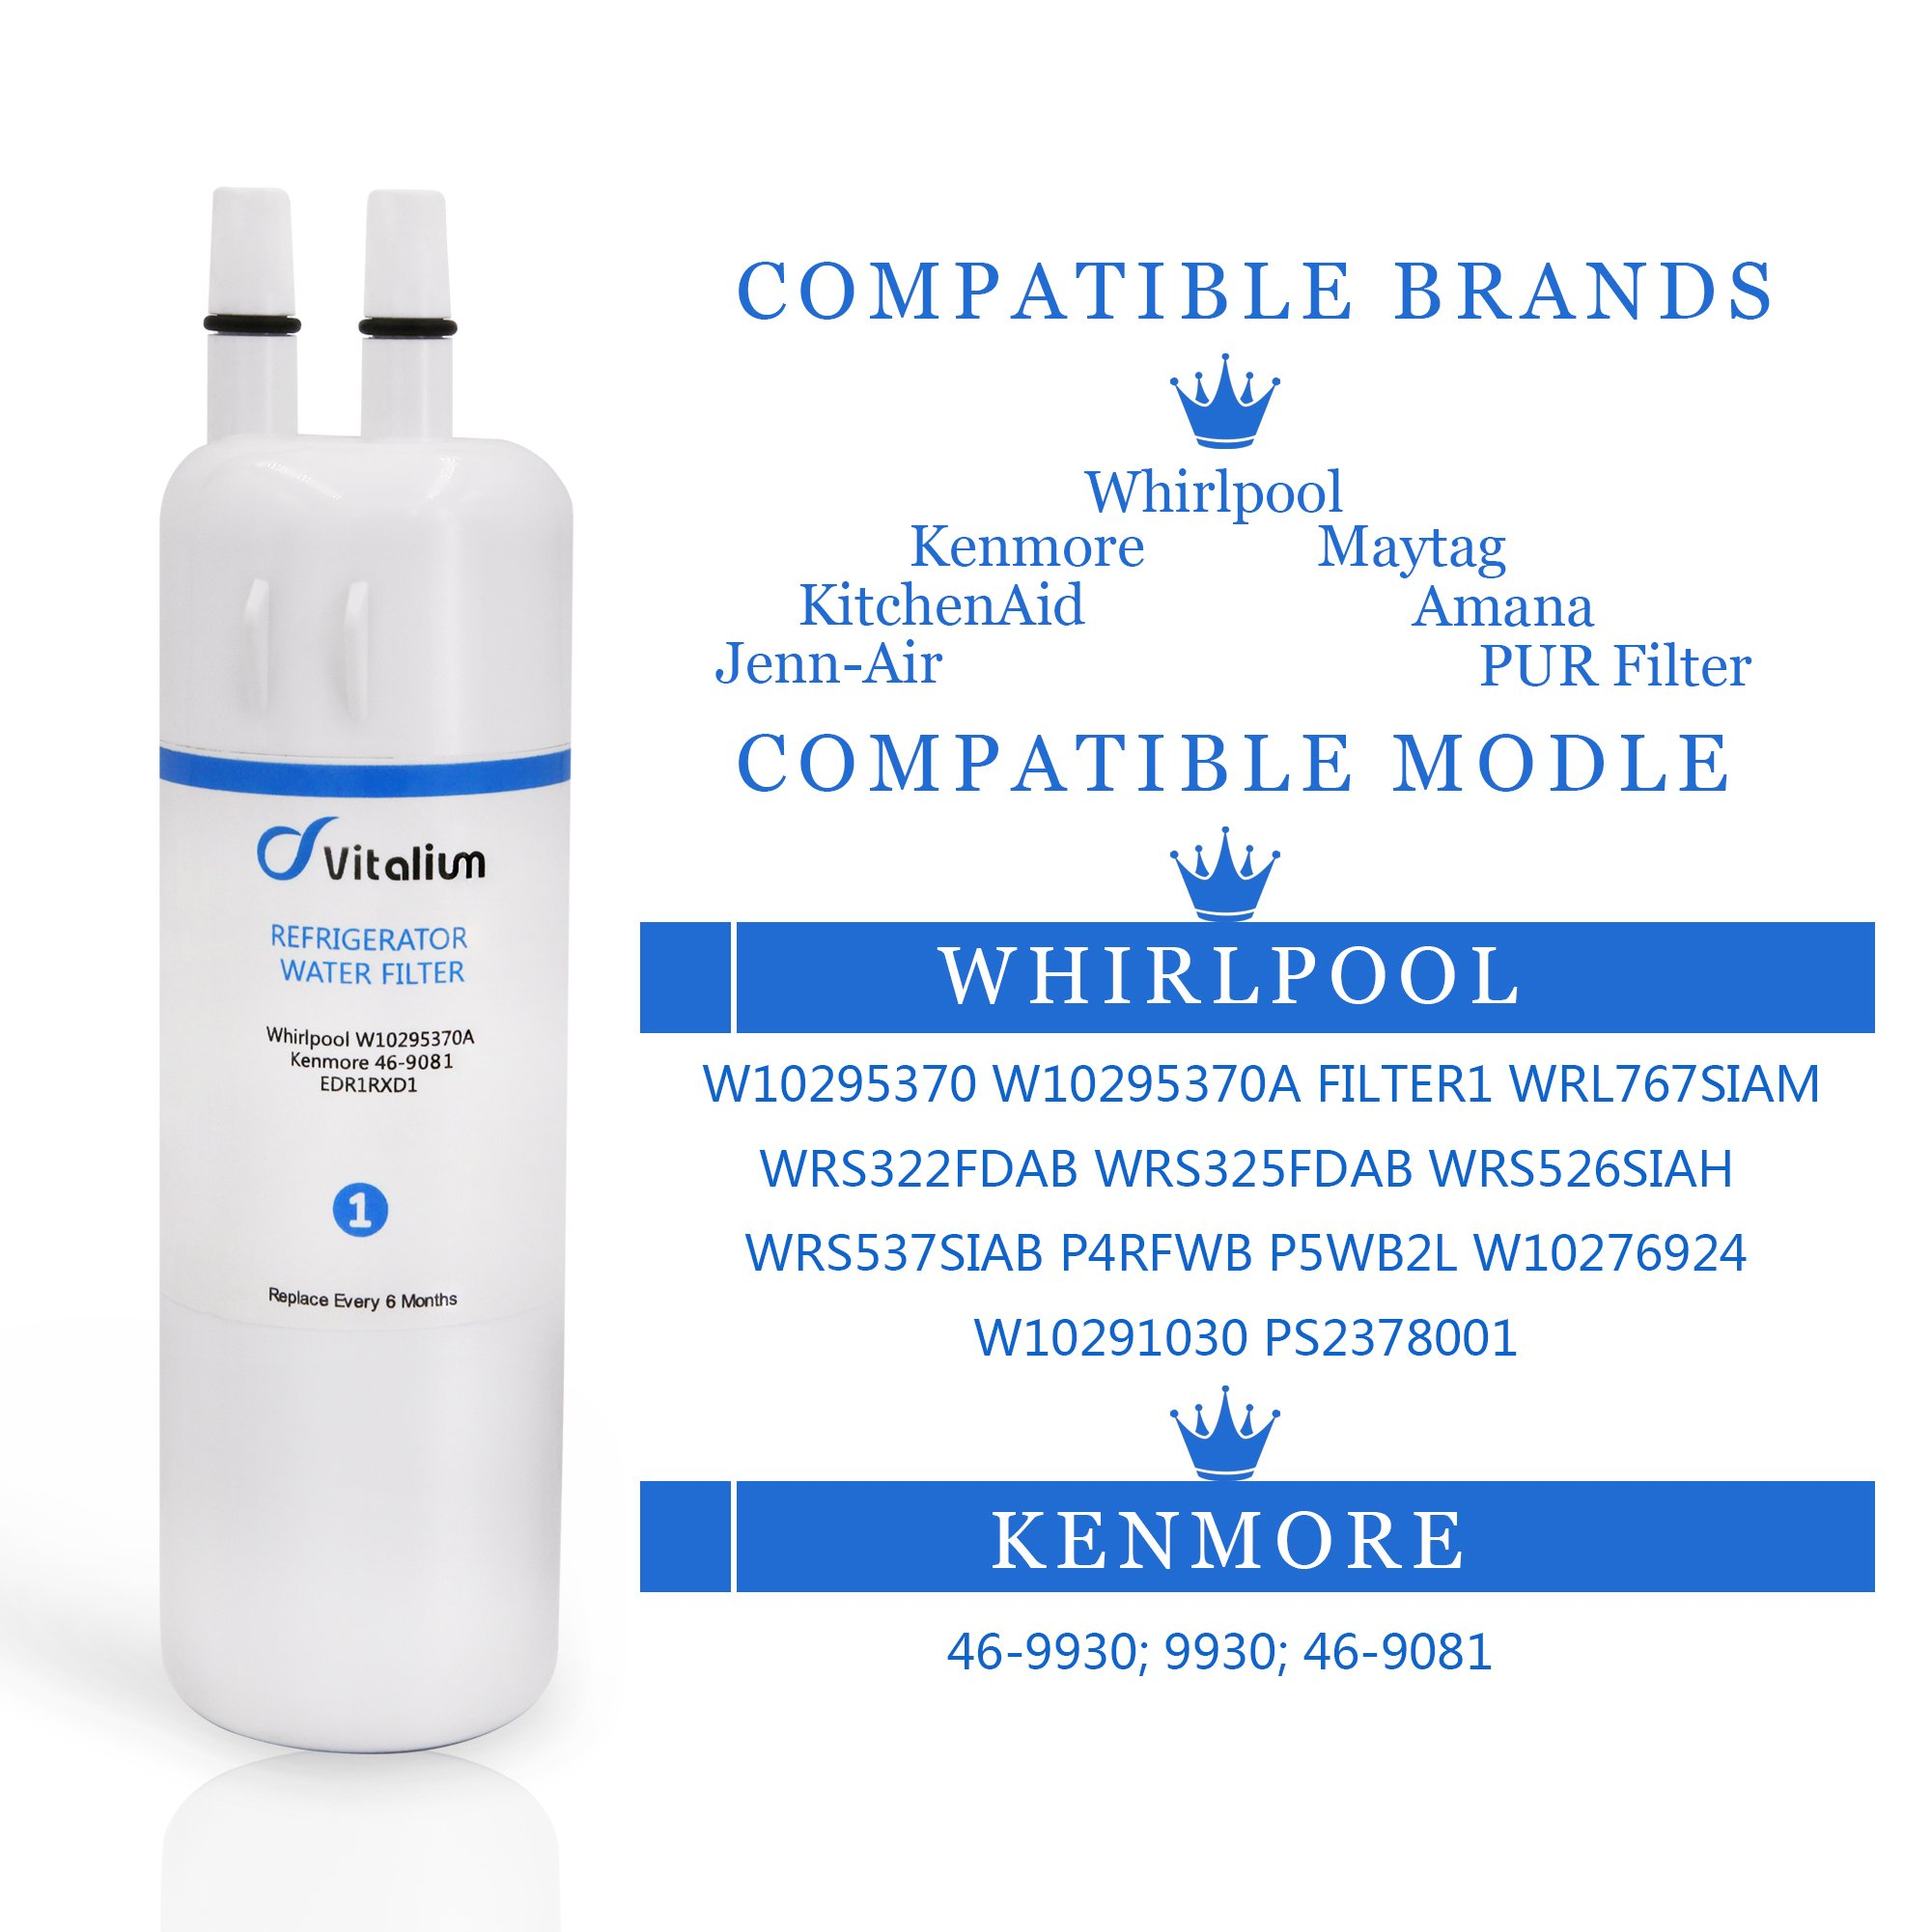 W10295370 W10295370A Whirlpool Refrigerator Water Filter 1, EDR1RXD1, Kenmore 46-9930, Kenmore 46-9081(3 PACK) by Vitaliums (Image #4)